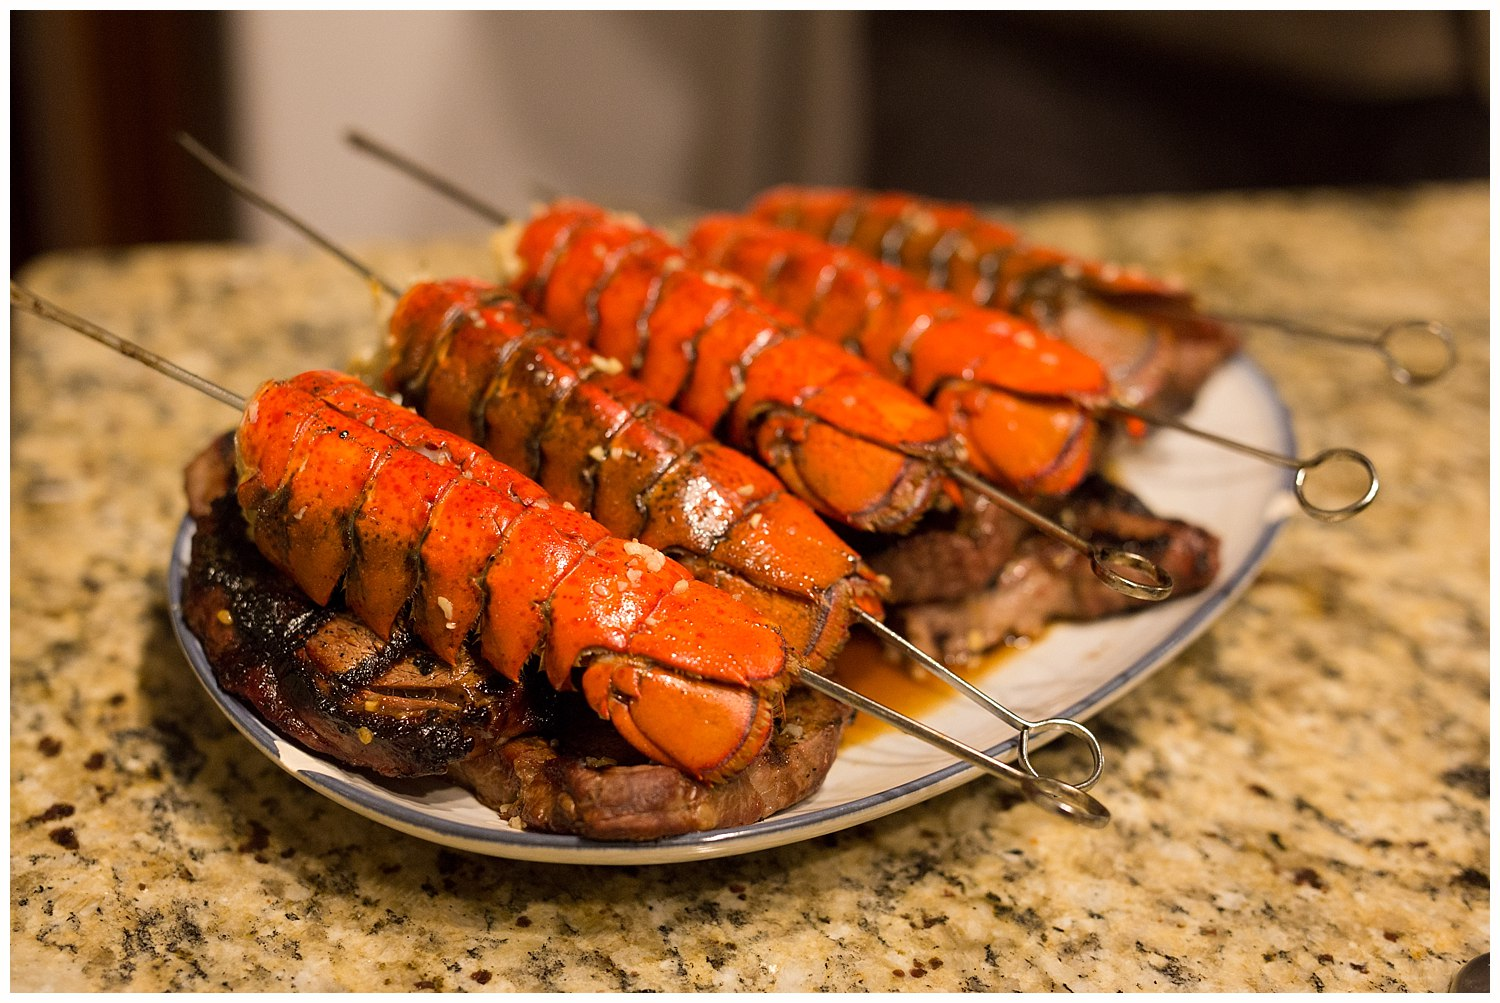 homemade lobster tails for New Year's Eve